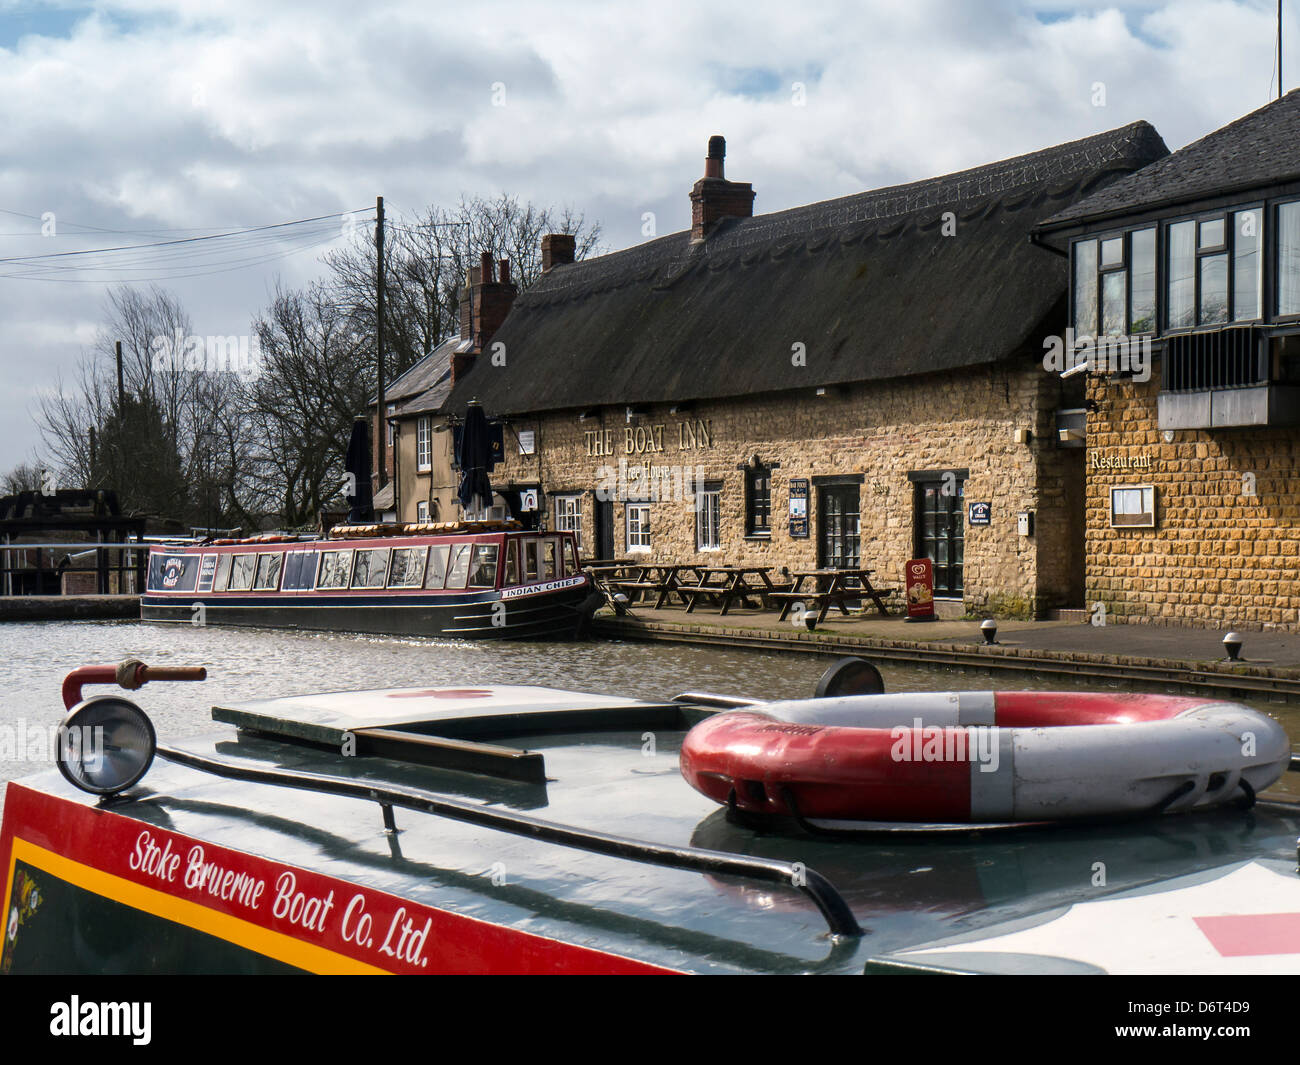 Stoke Bruerne on the Grand Union Canal, Northamptonshire - Stock Image